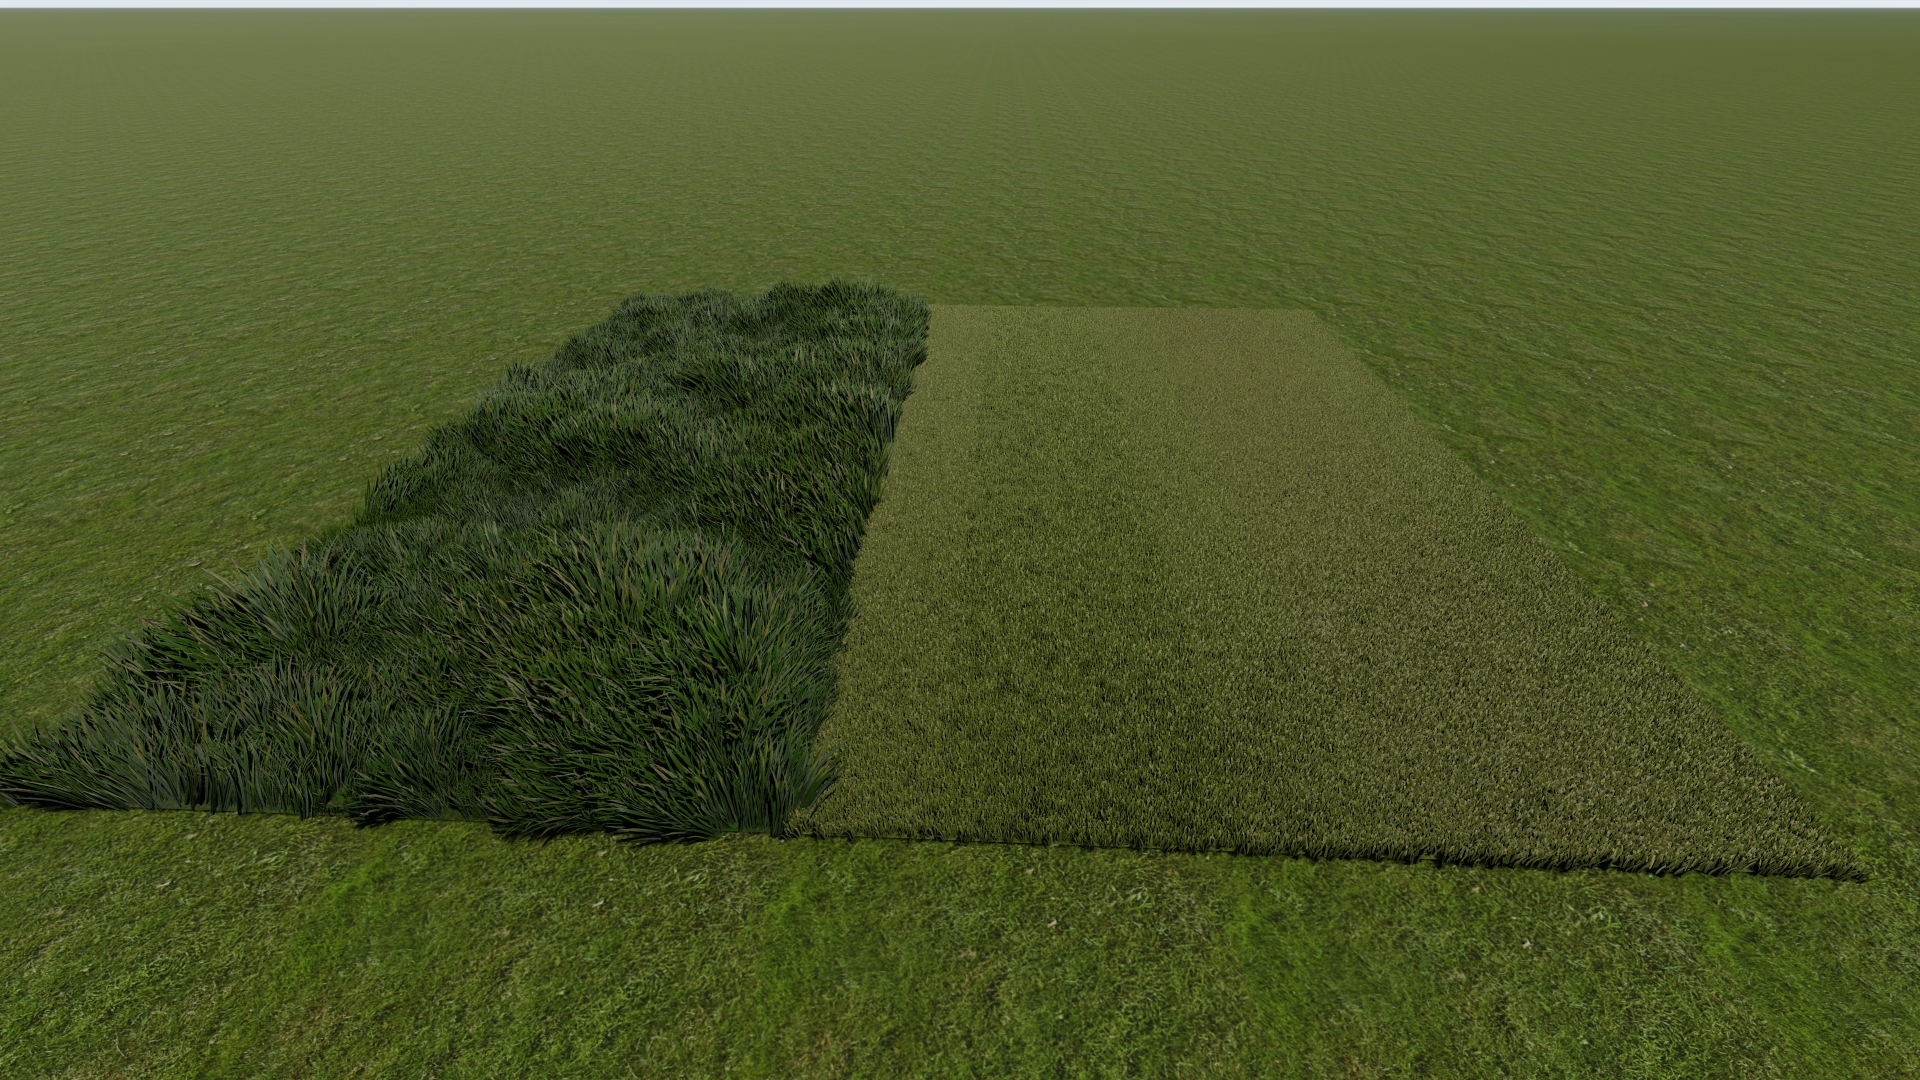 grass - rough and cut together.jpg